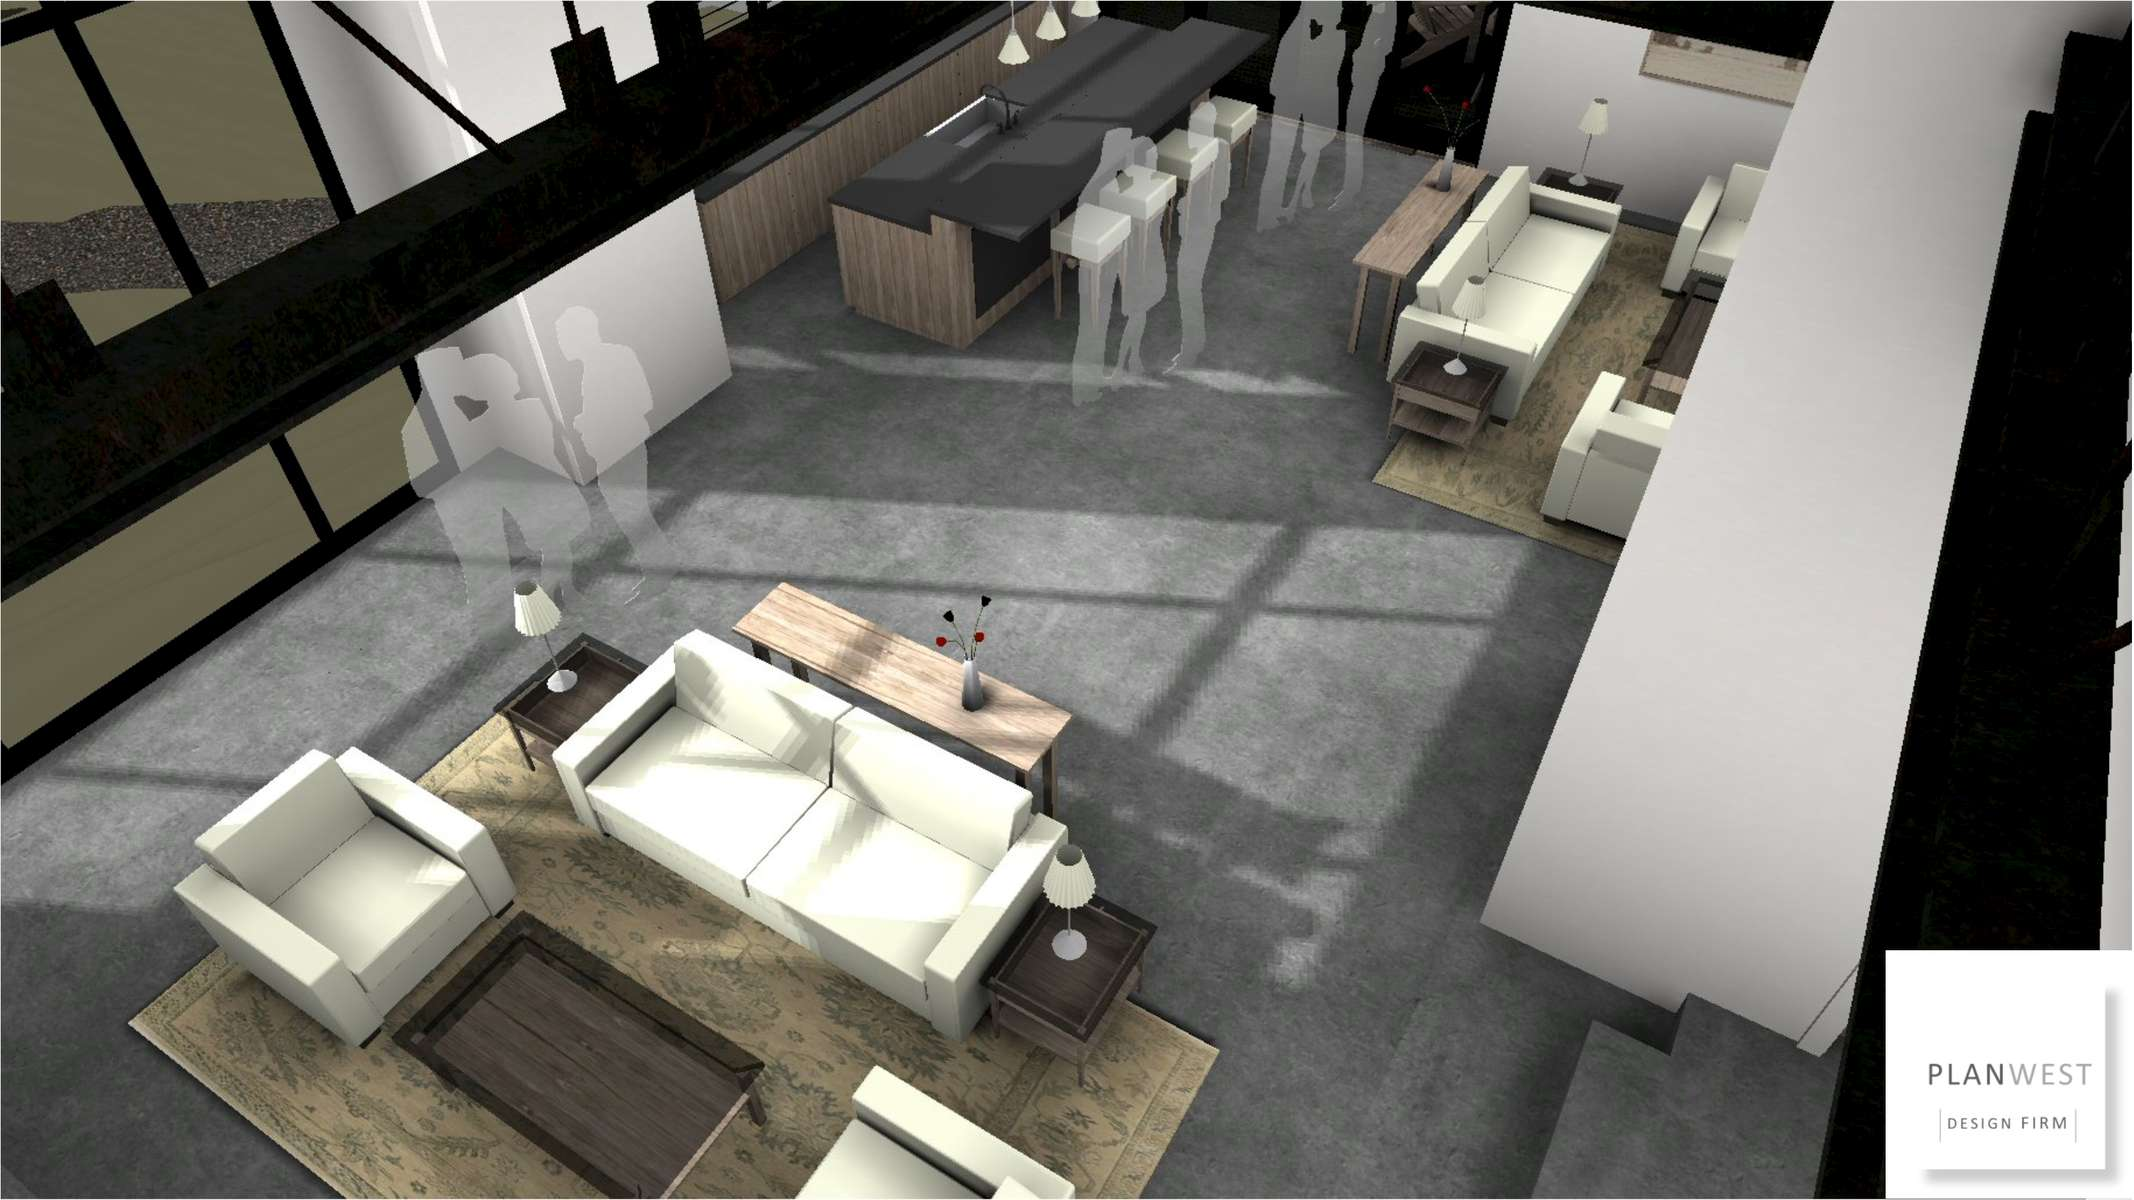 Plan-West-Design-Firm_Projects-in-process-1542